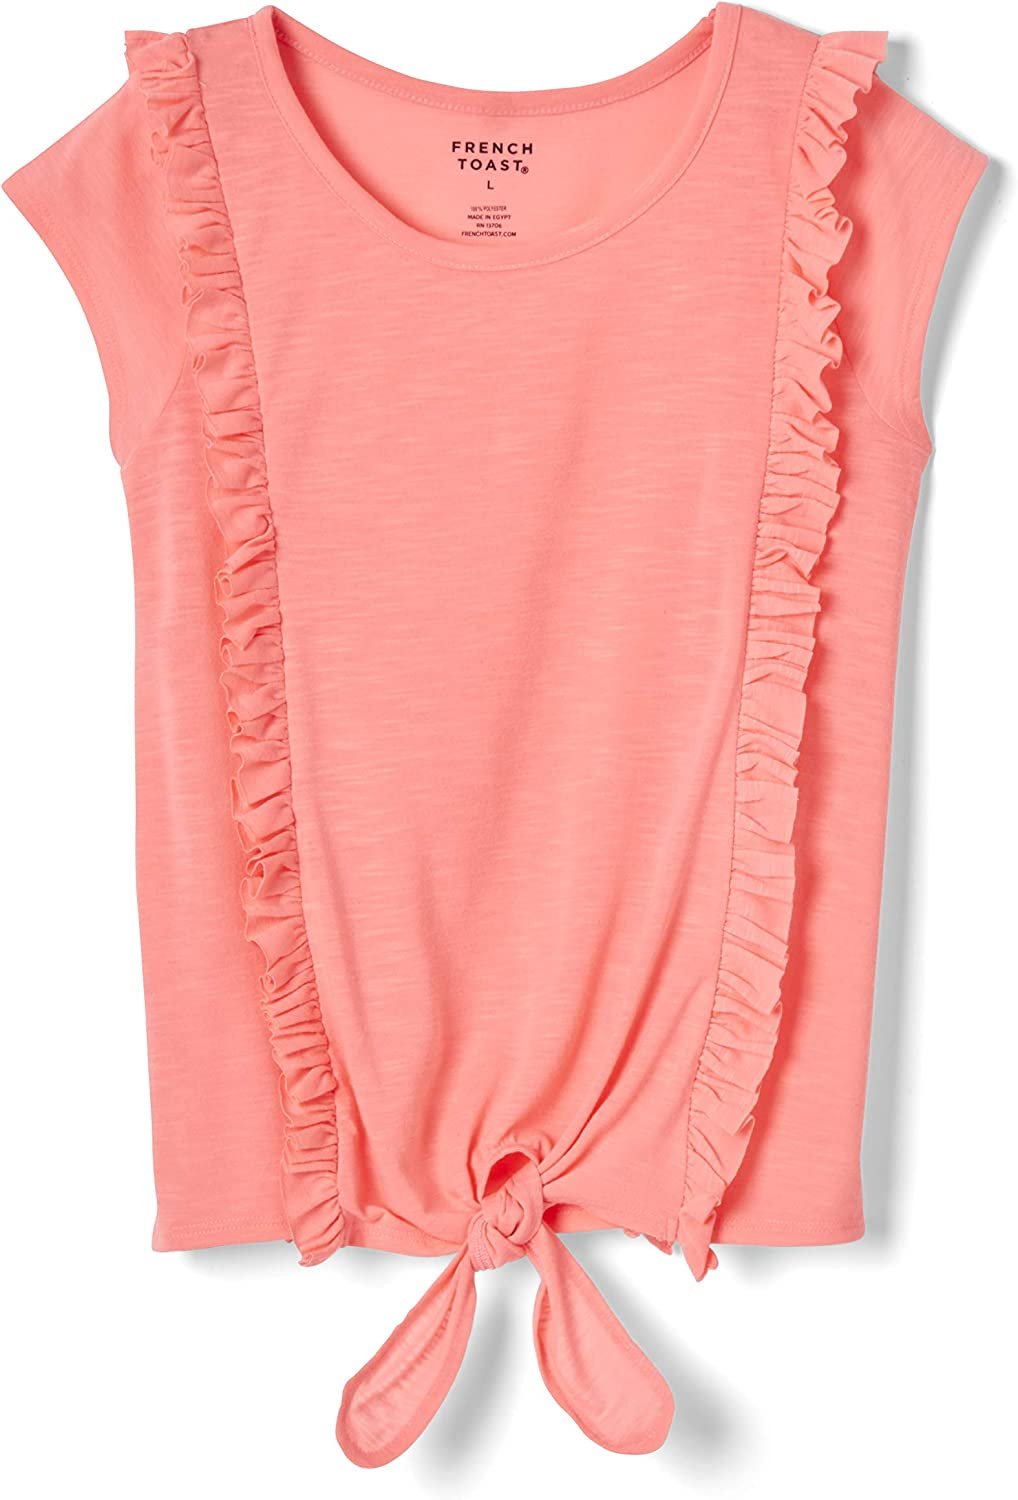 French Toast Girls' Super popular specialty store Recommended Short Sleeve Front Tee Shirt Ruffle Tie